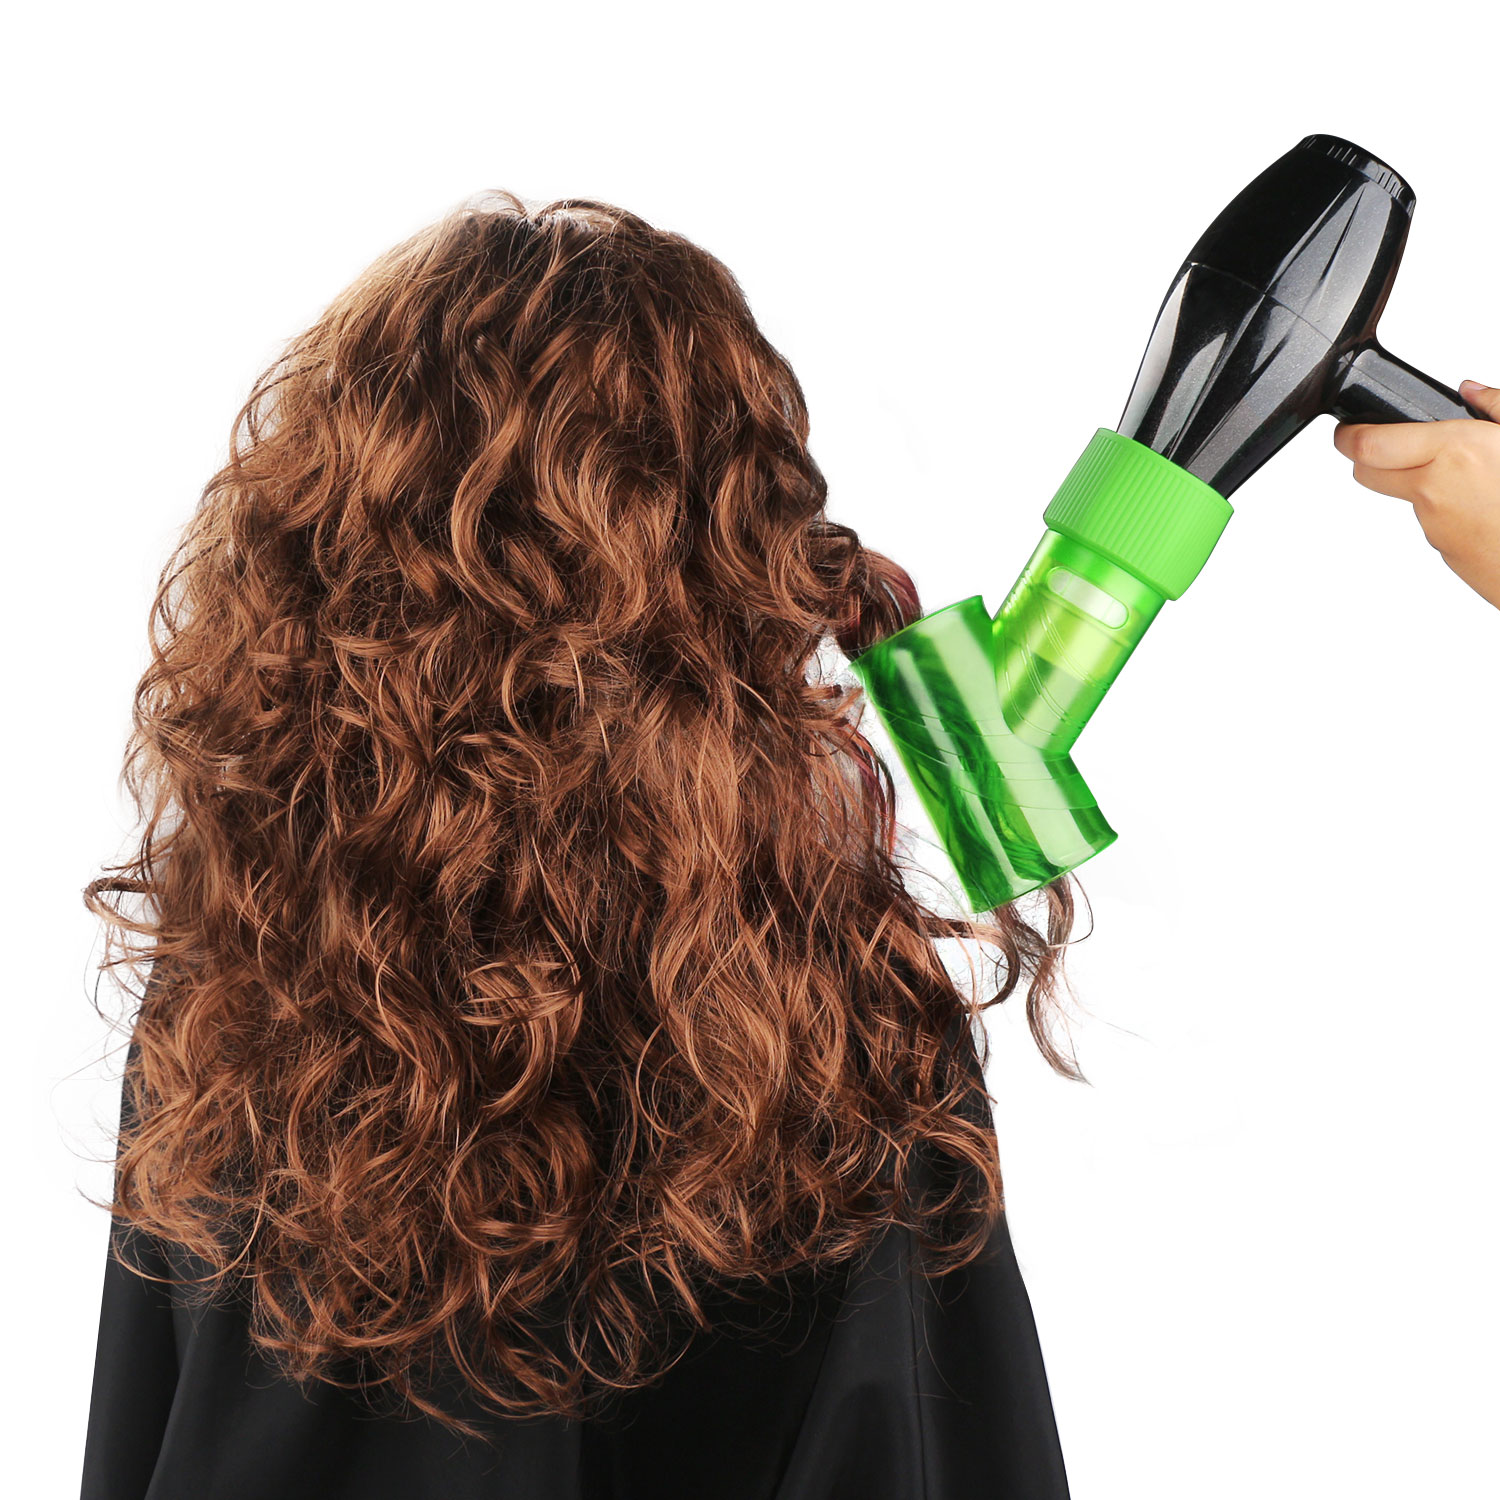 Wind Spin Hair Dryer Diffuser For Curly Wavy Permed